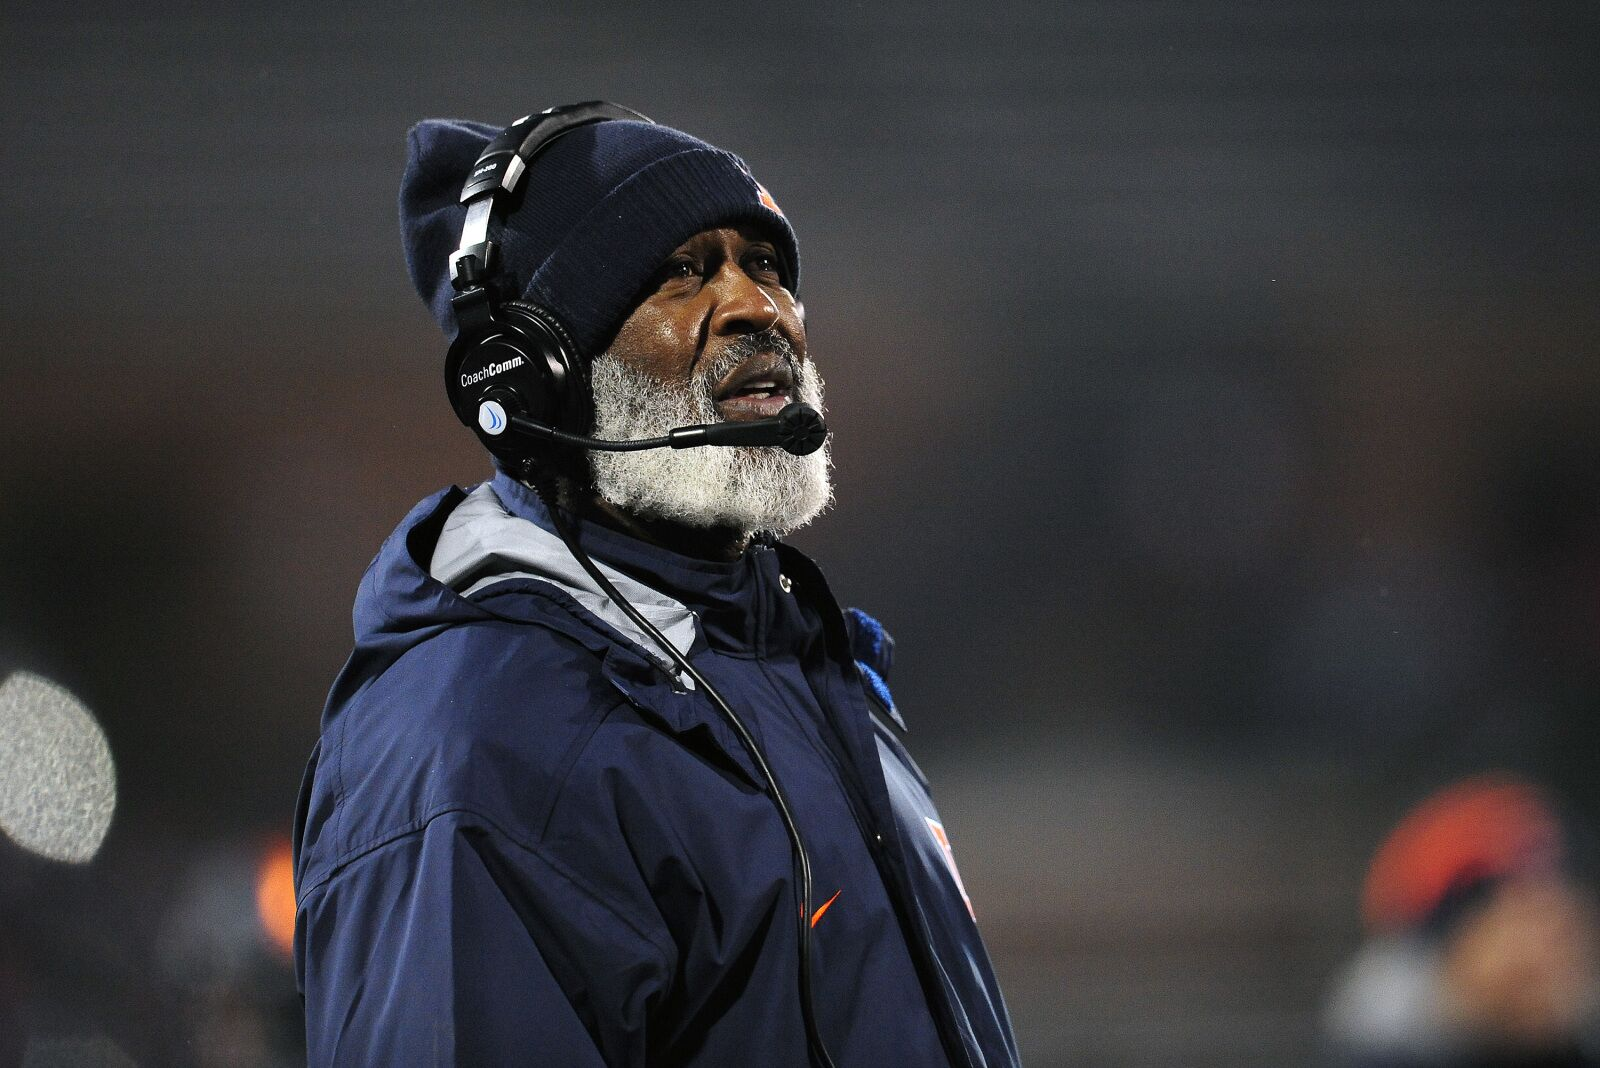 Illinois Football: Nae'Saan Dickerson receives offer from Illini